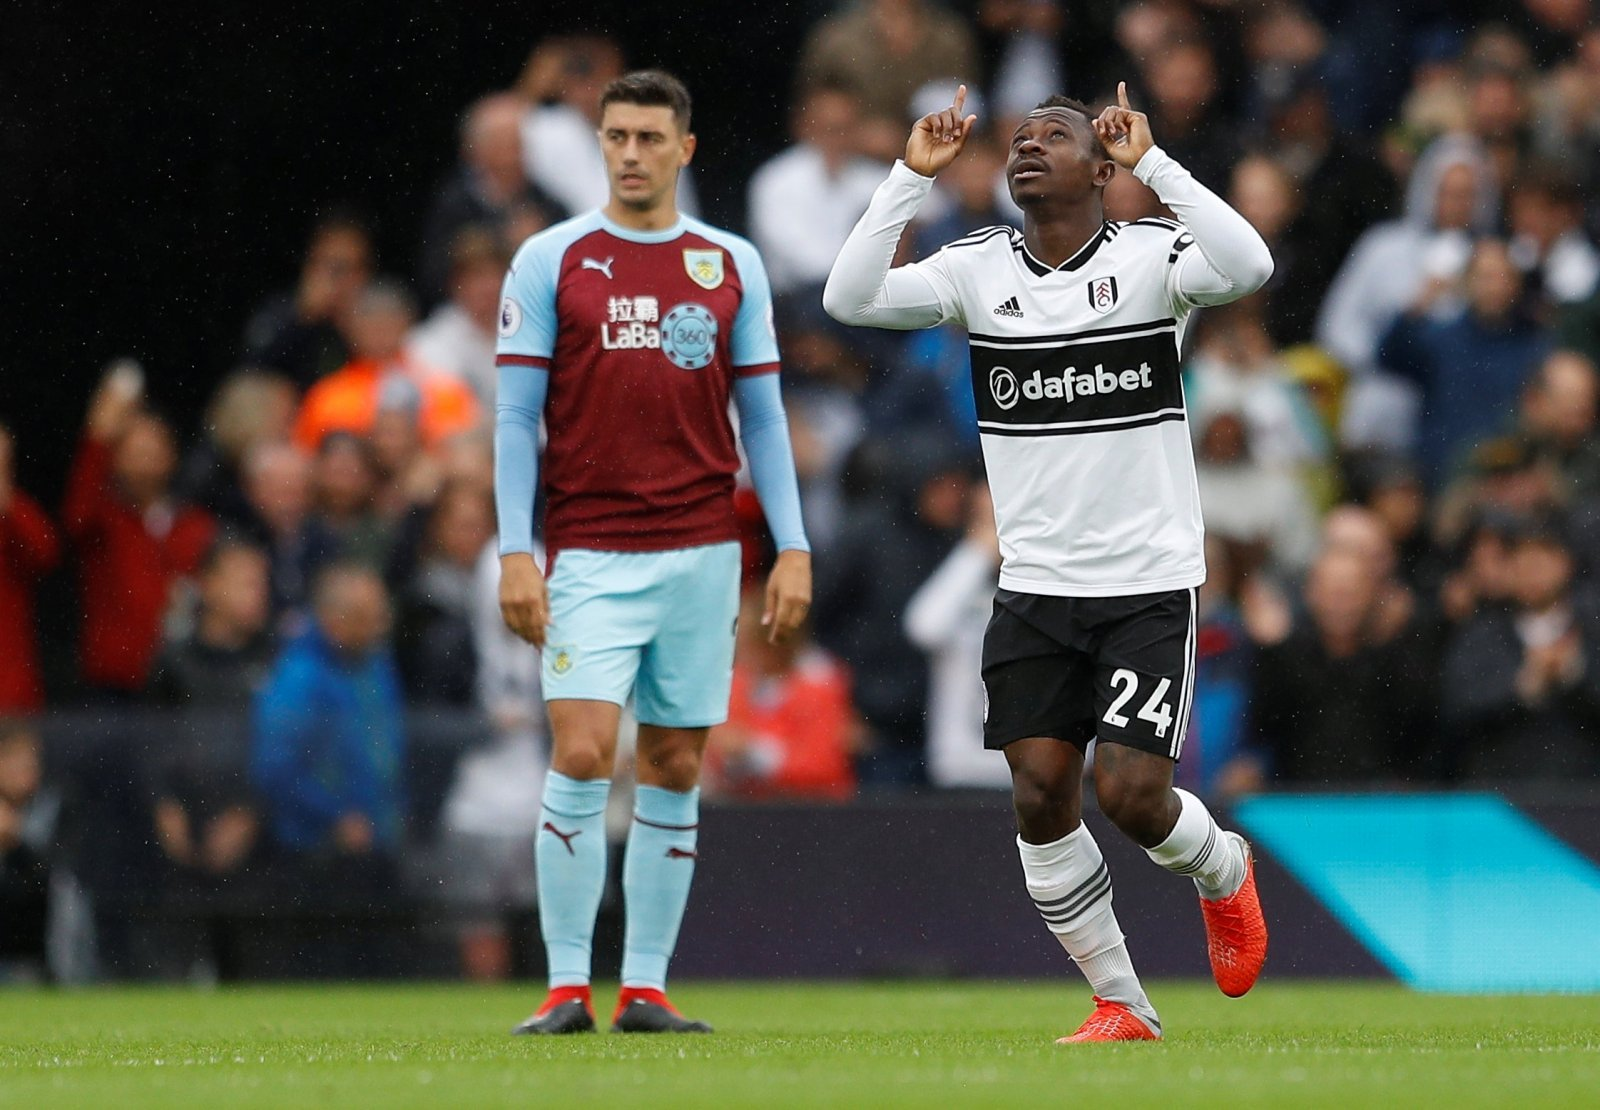 West Ham missed a trick by not signing Jean Michael Seri